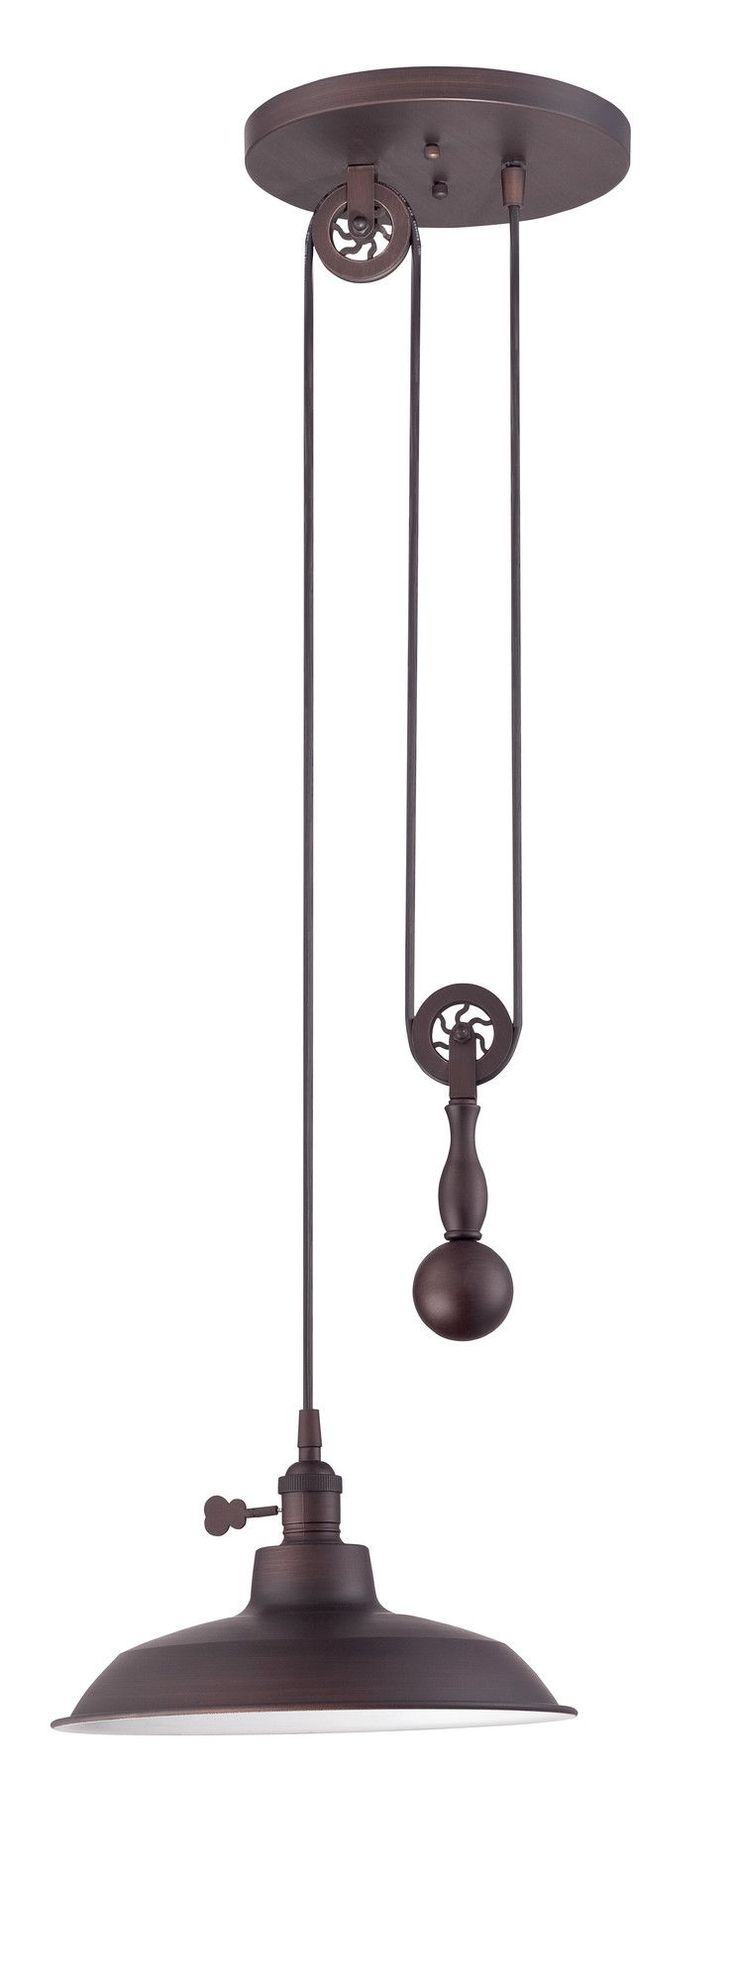 This is such a cool industrial light. Perfect for a rustic kitchen/island